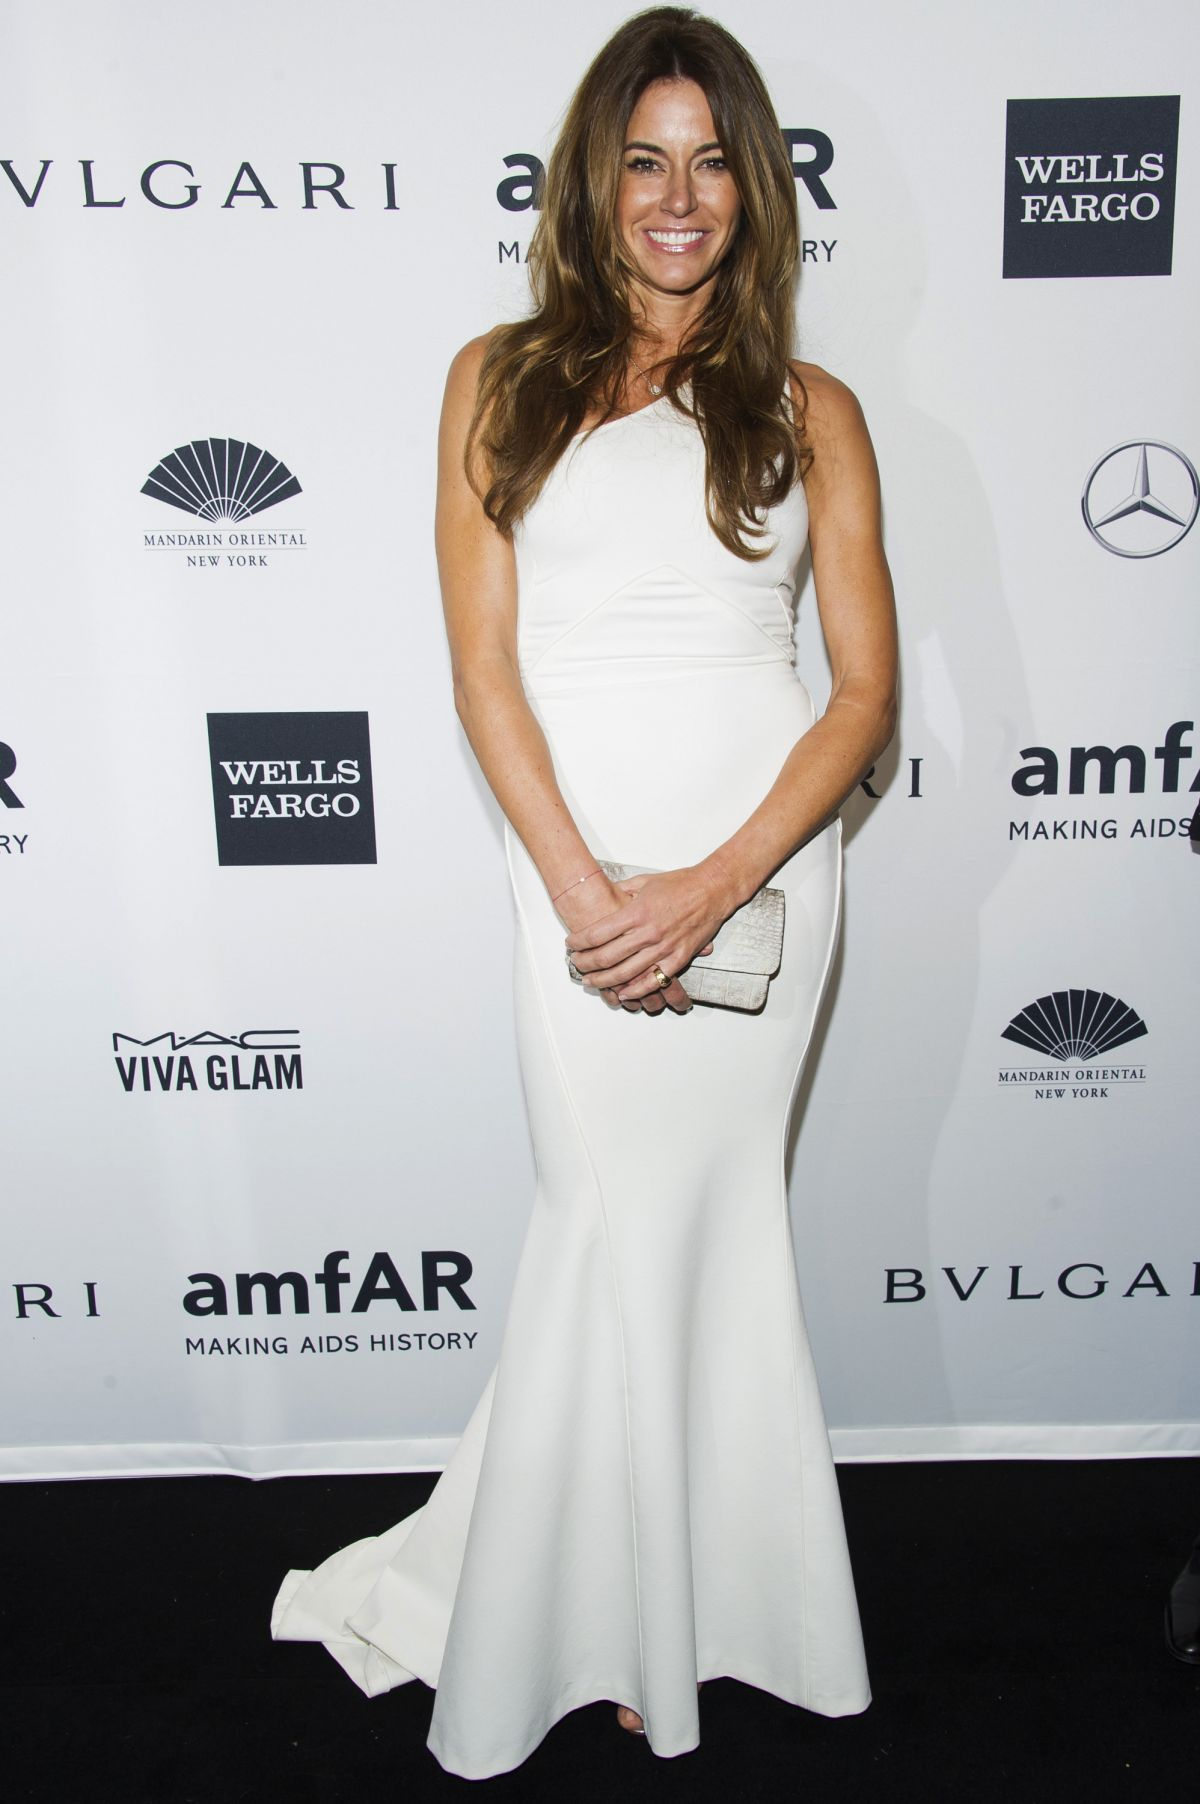 KELLY BENSIMON at 2014 AMFAR Gala in New York